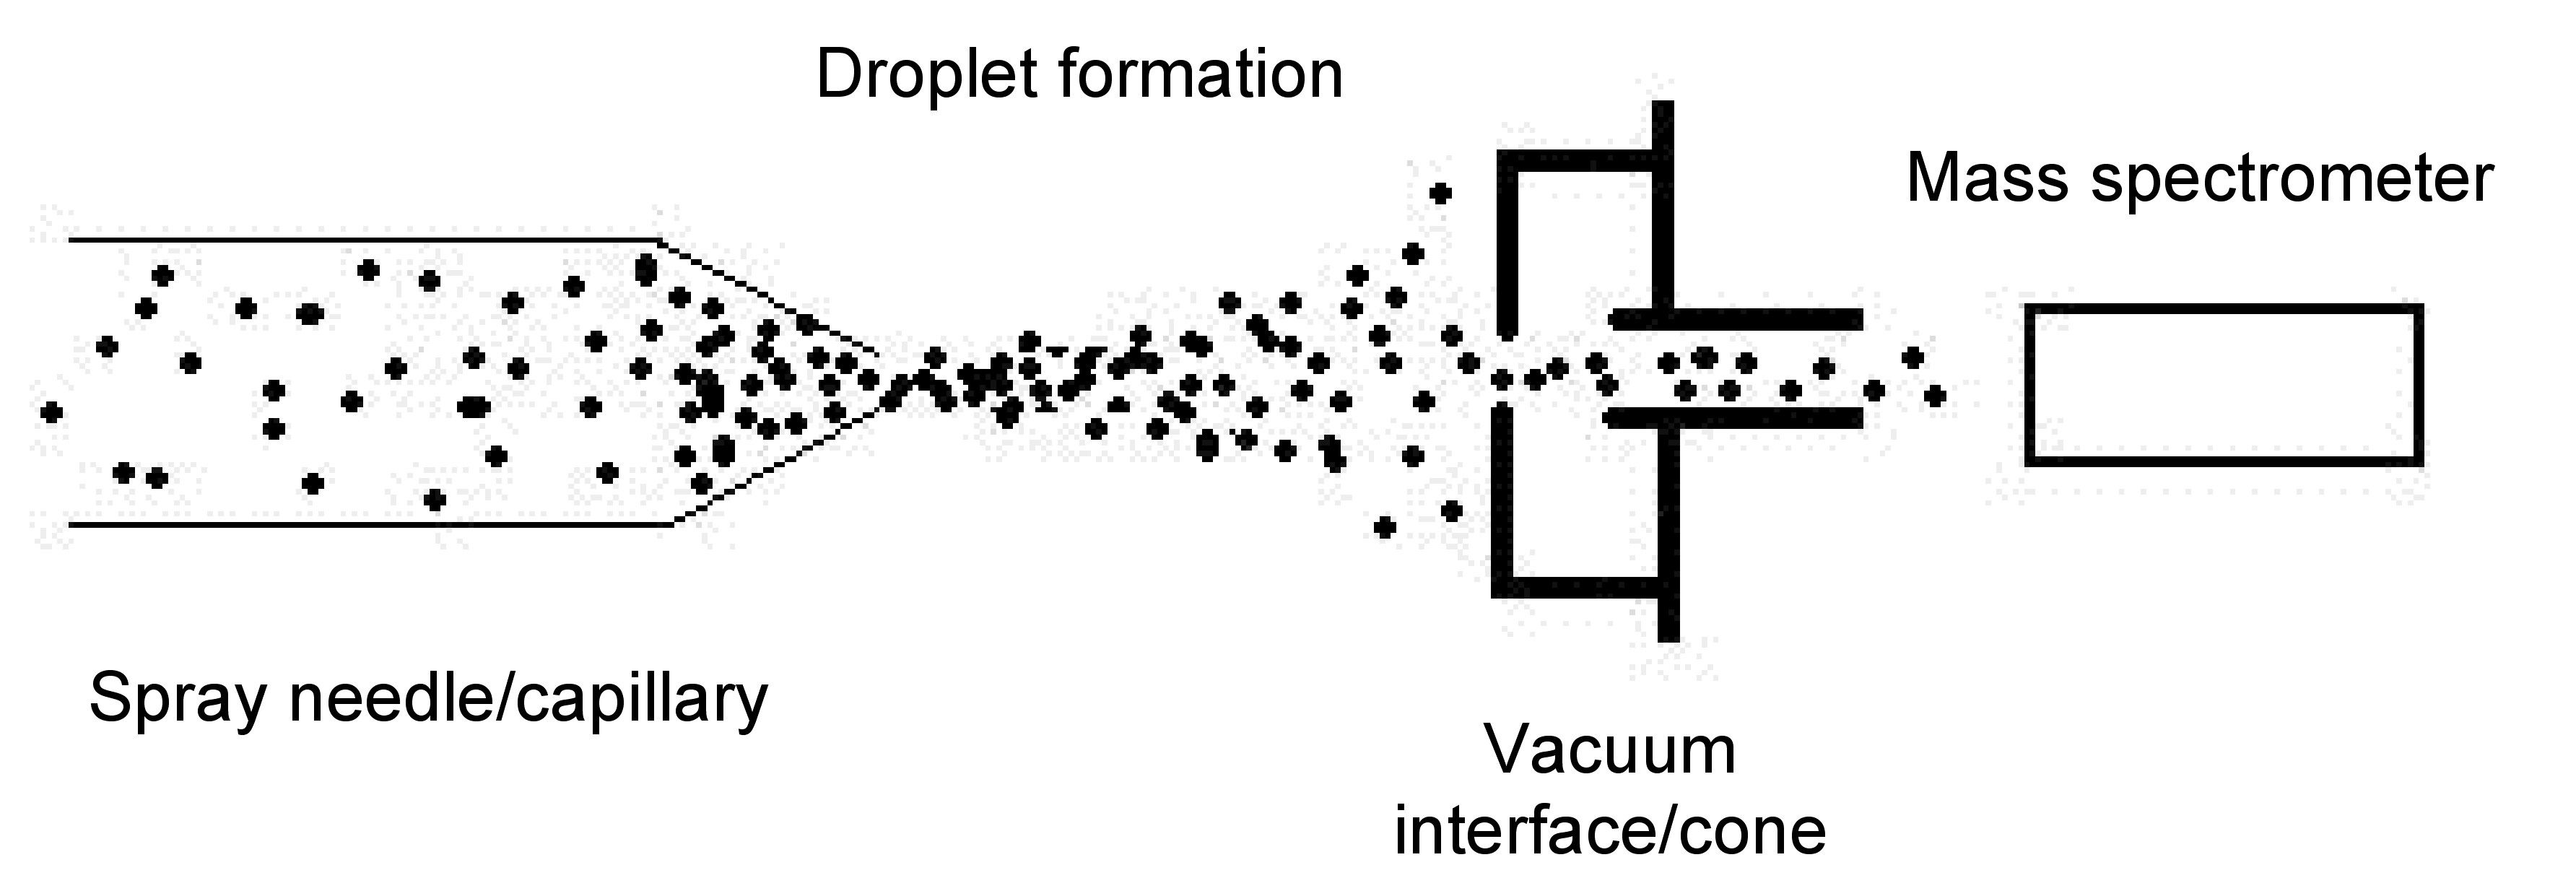 Proteinysis Using Electrospray Ionization Mass